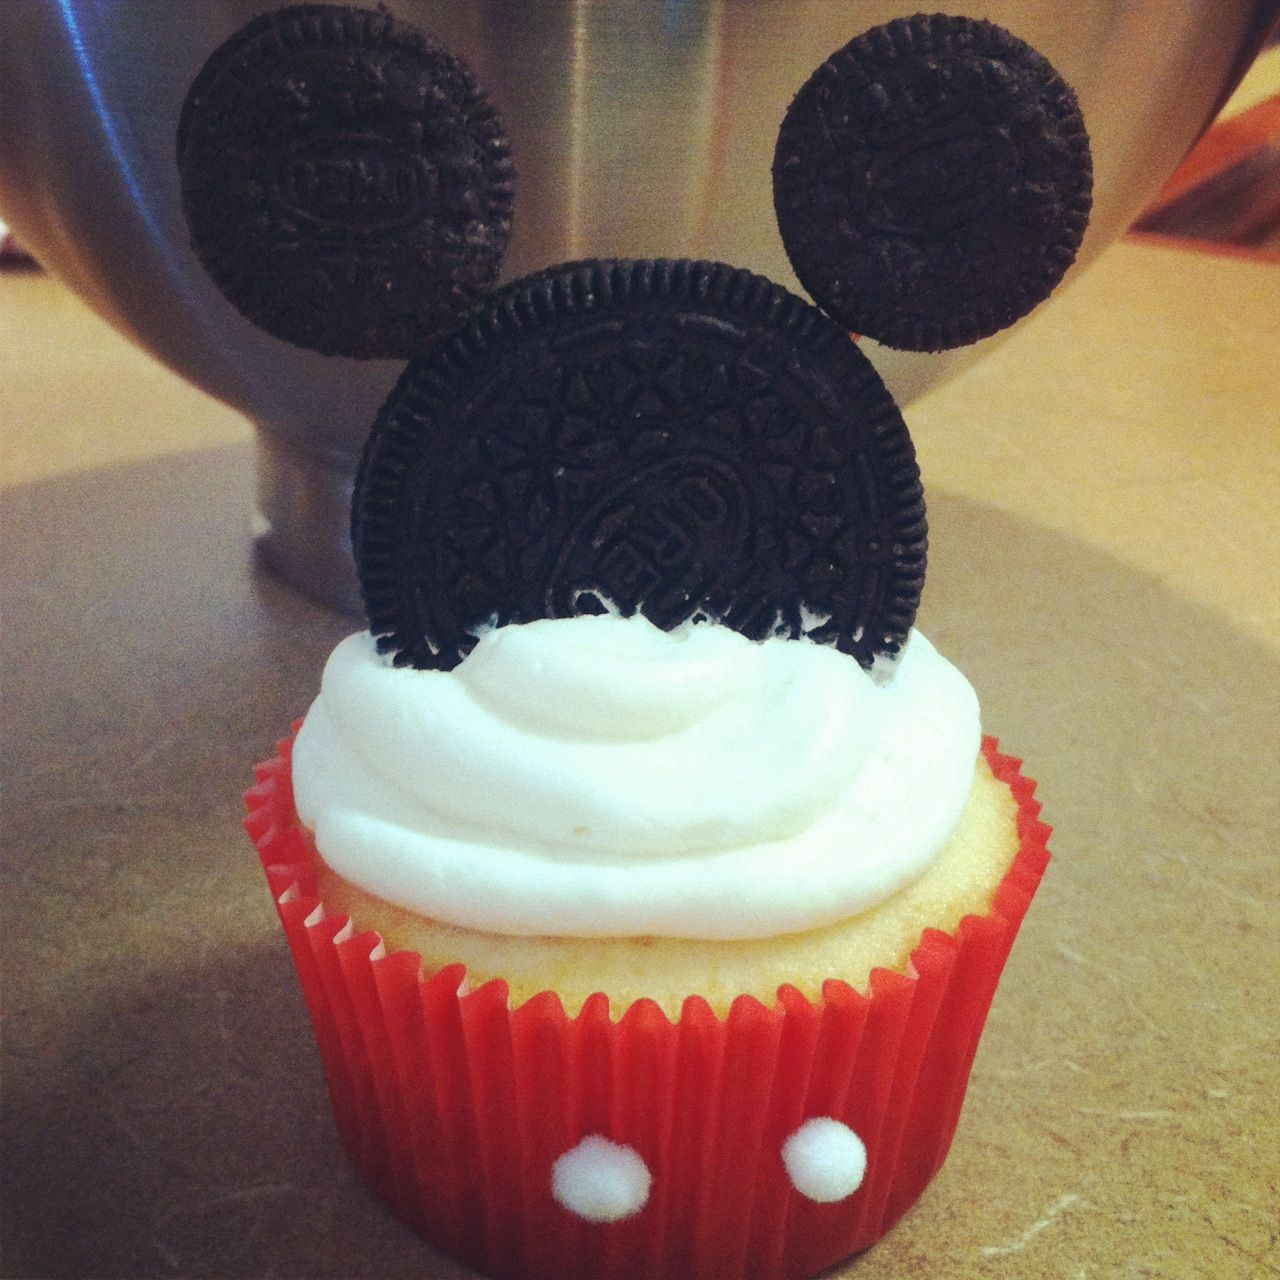 Pictures Of Mickey Mouse Cupcakes : Mickey mouse cupcakes food Pinterest